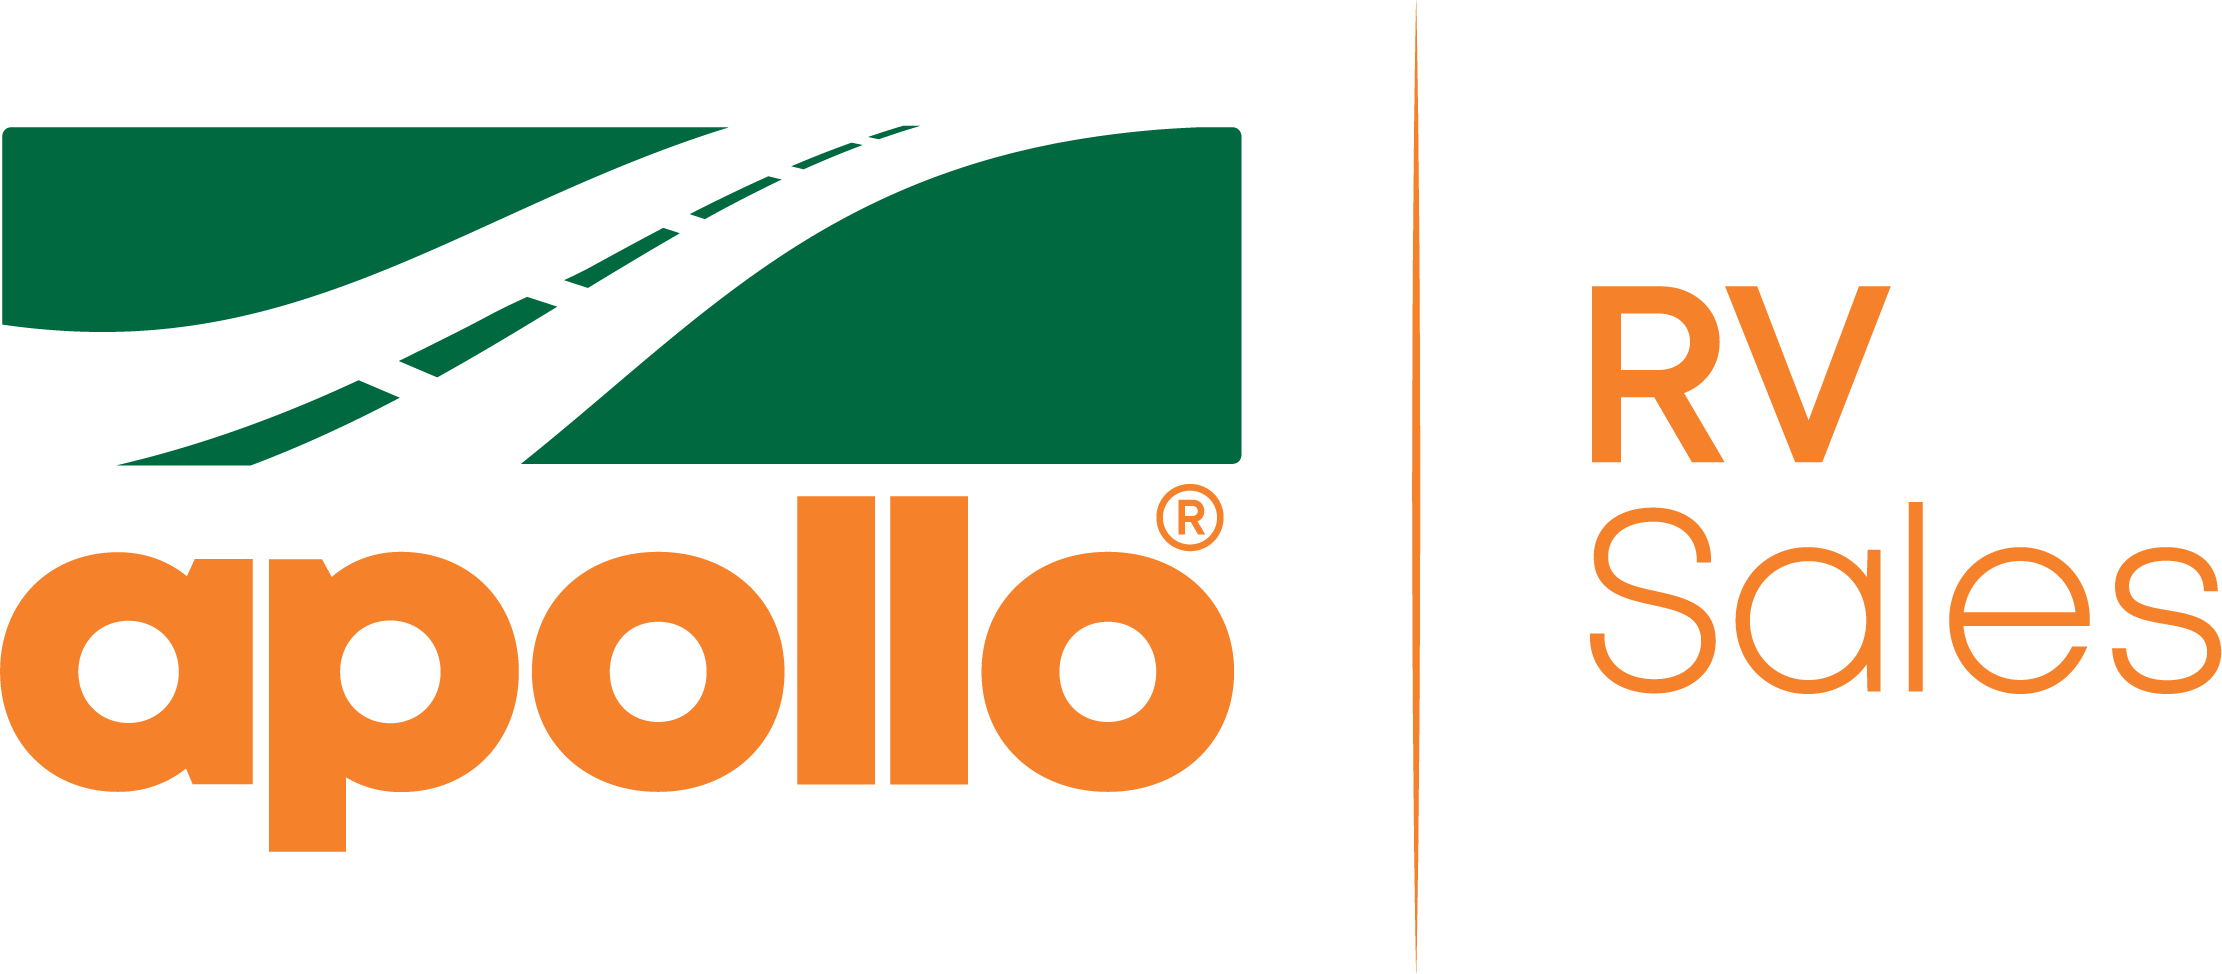 Apollo RV Sales - New Zealand